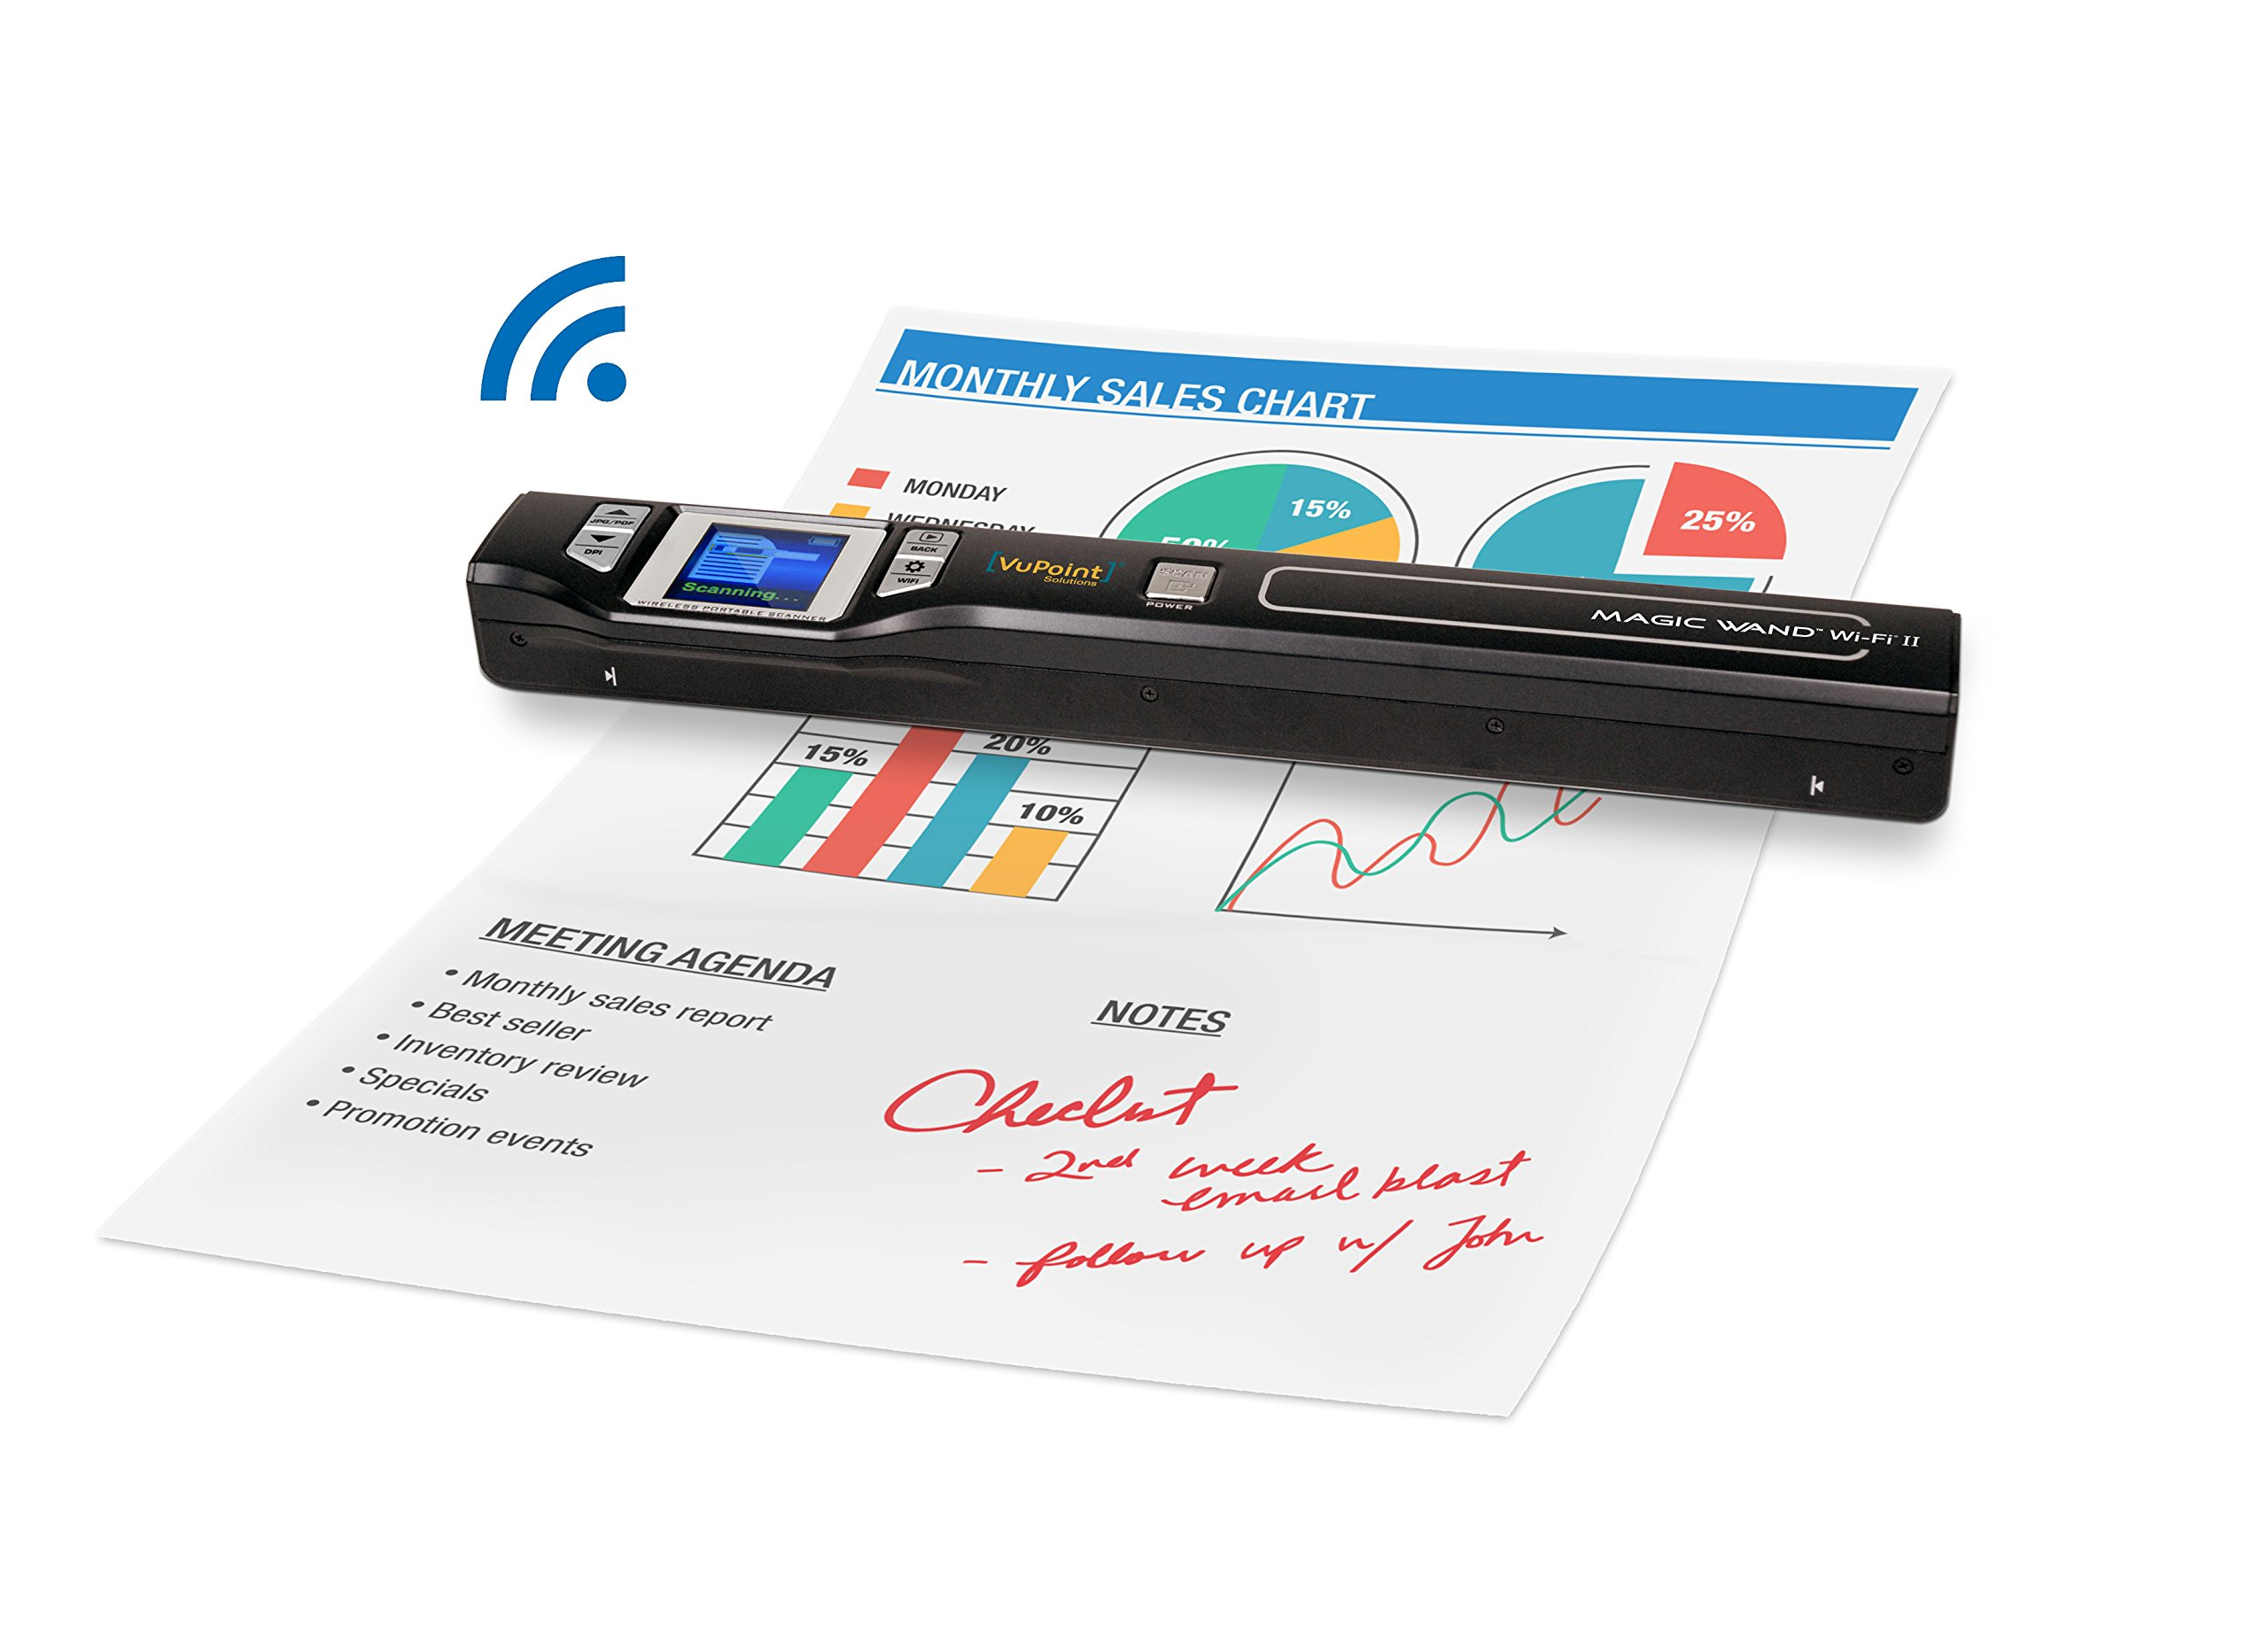 Document/Image Scanner 8x Zoom VuPoint ST47 Magic Wand [Portable, LCD screen, Wireless, Wi-Fi, OCR, Mac/PC/Apple/Android] Color Handheld Compact Scanner - Fast, Mobile, Smart, Slim Purse-fit Design by VuPoint Solutions